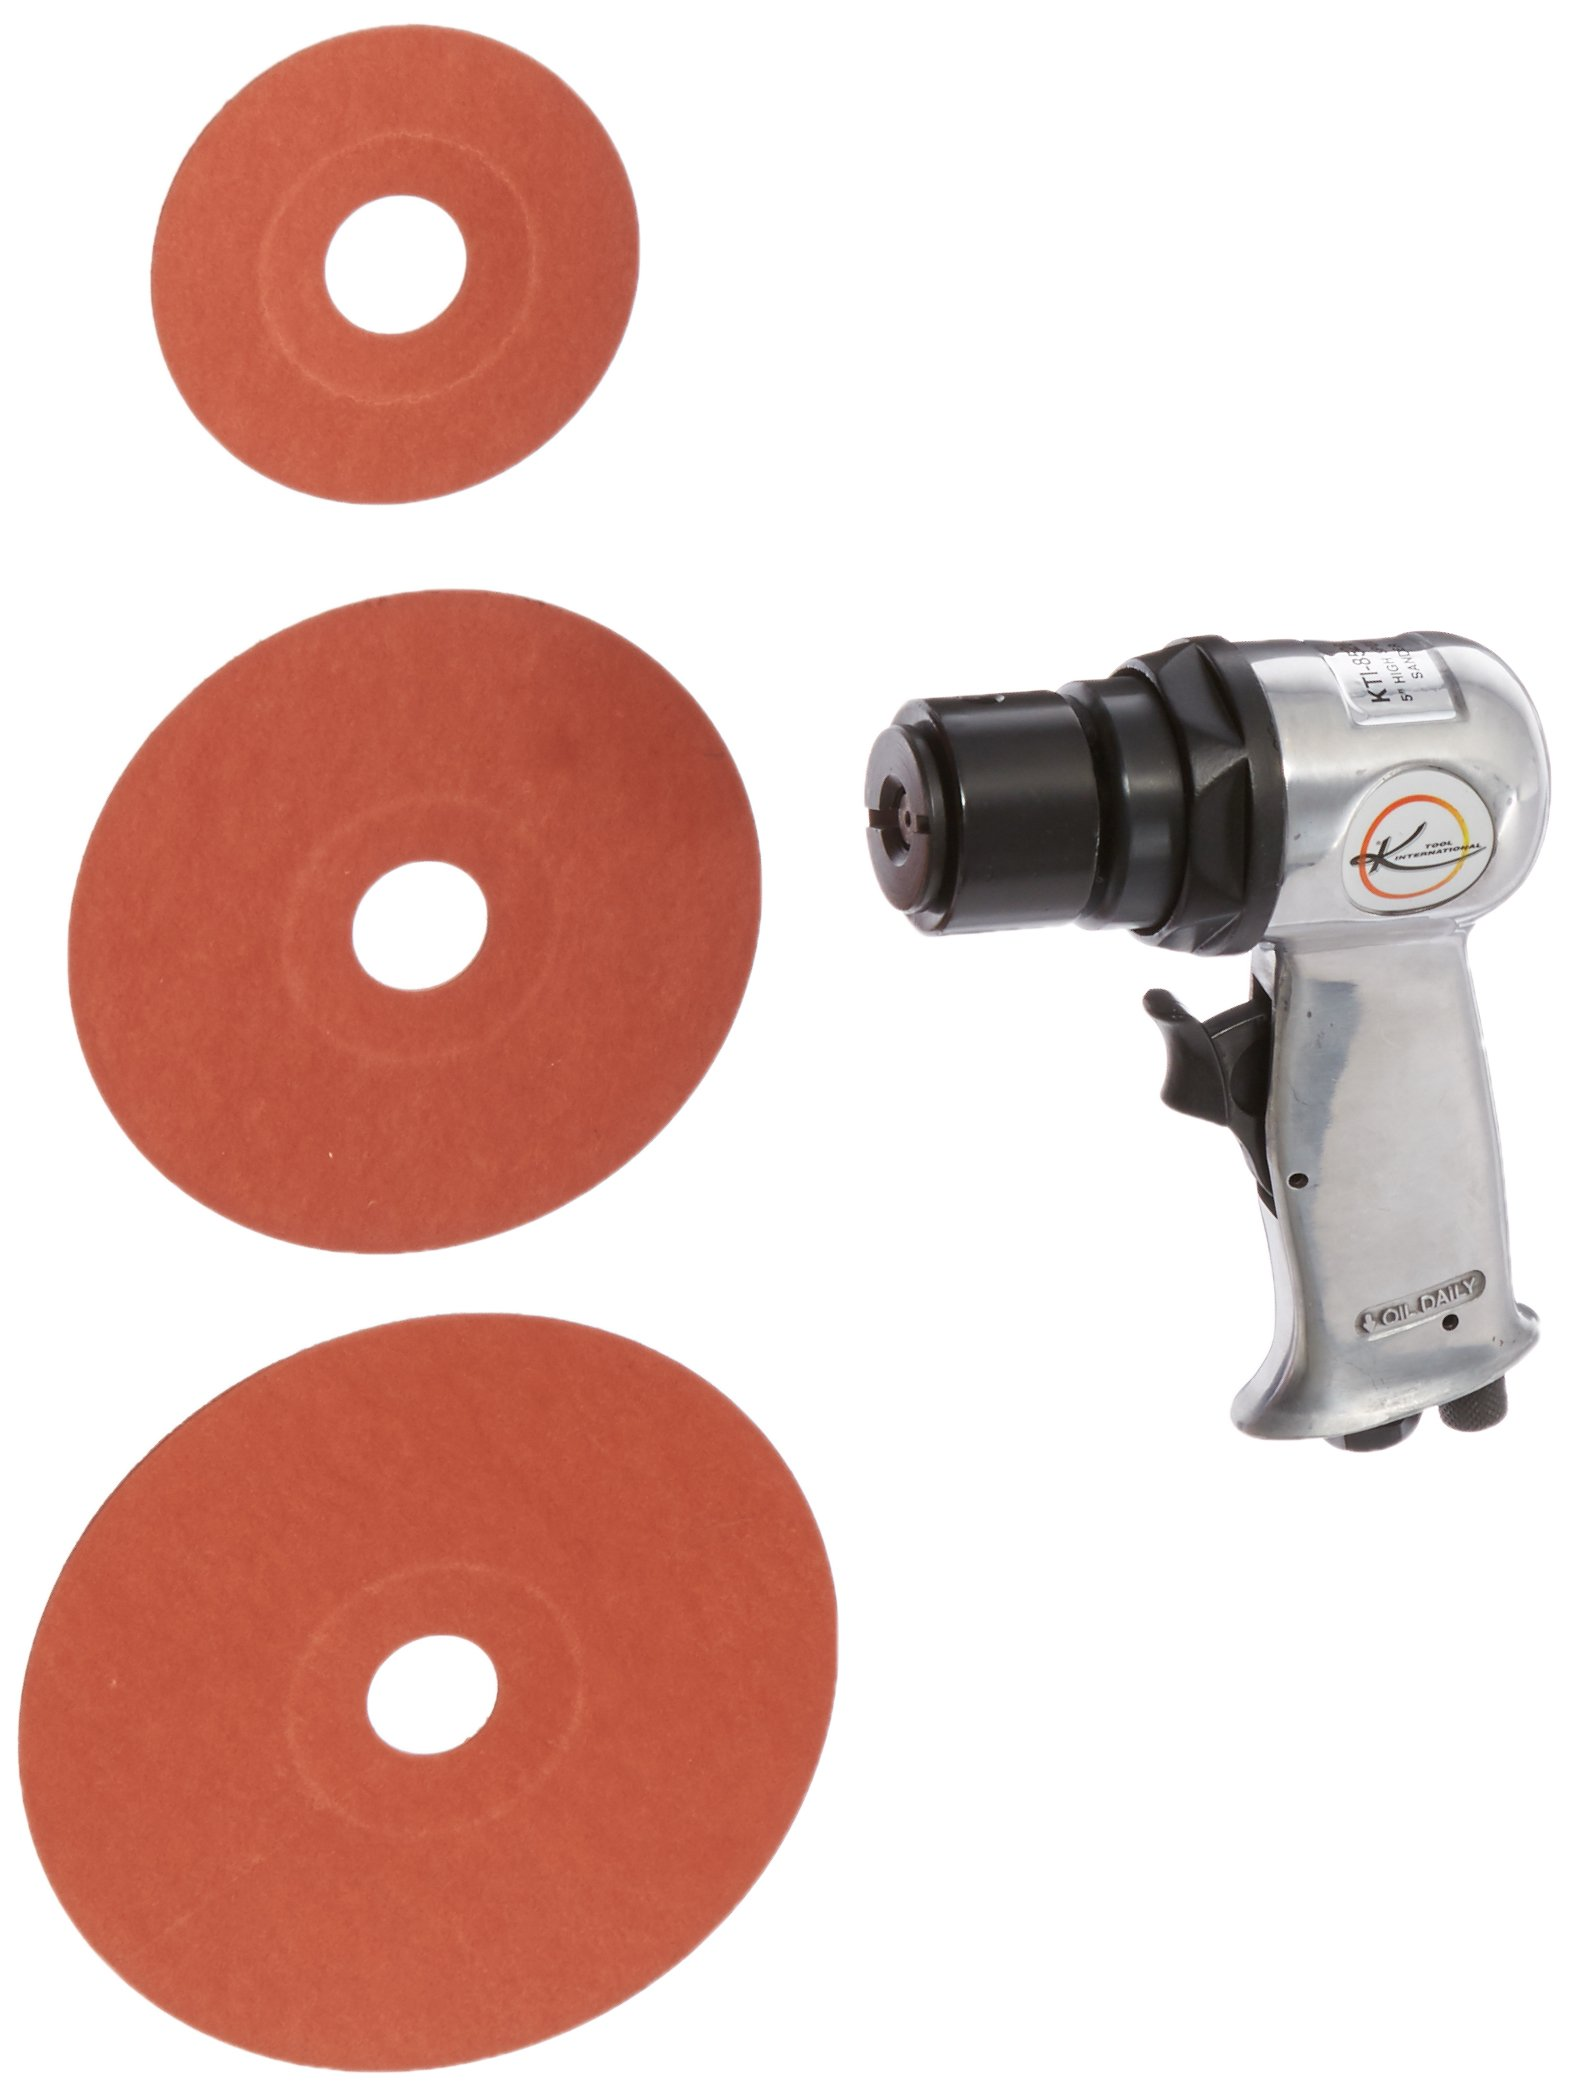 K-Tool International KTI (KTI-85265) Air Sander